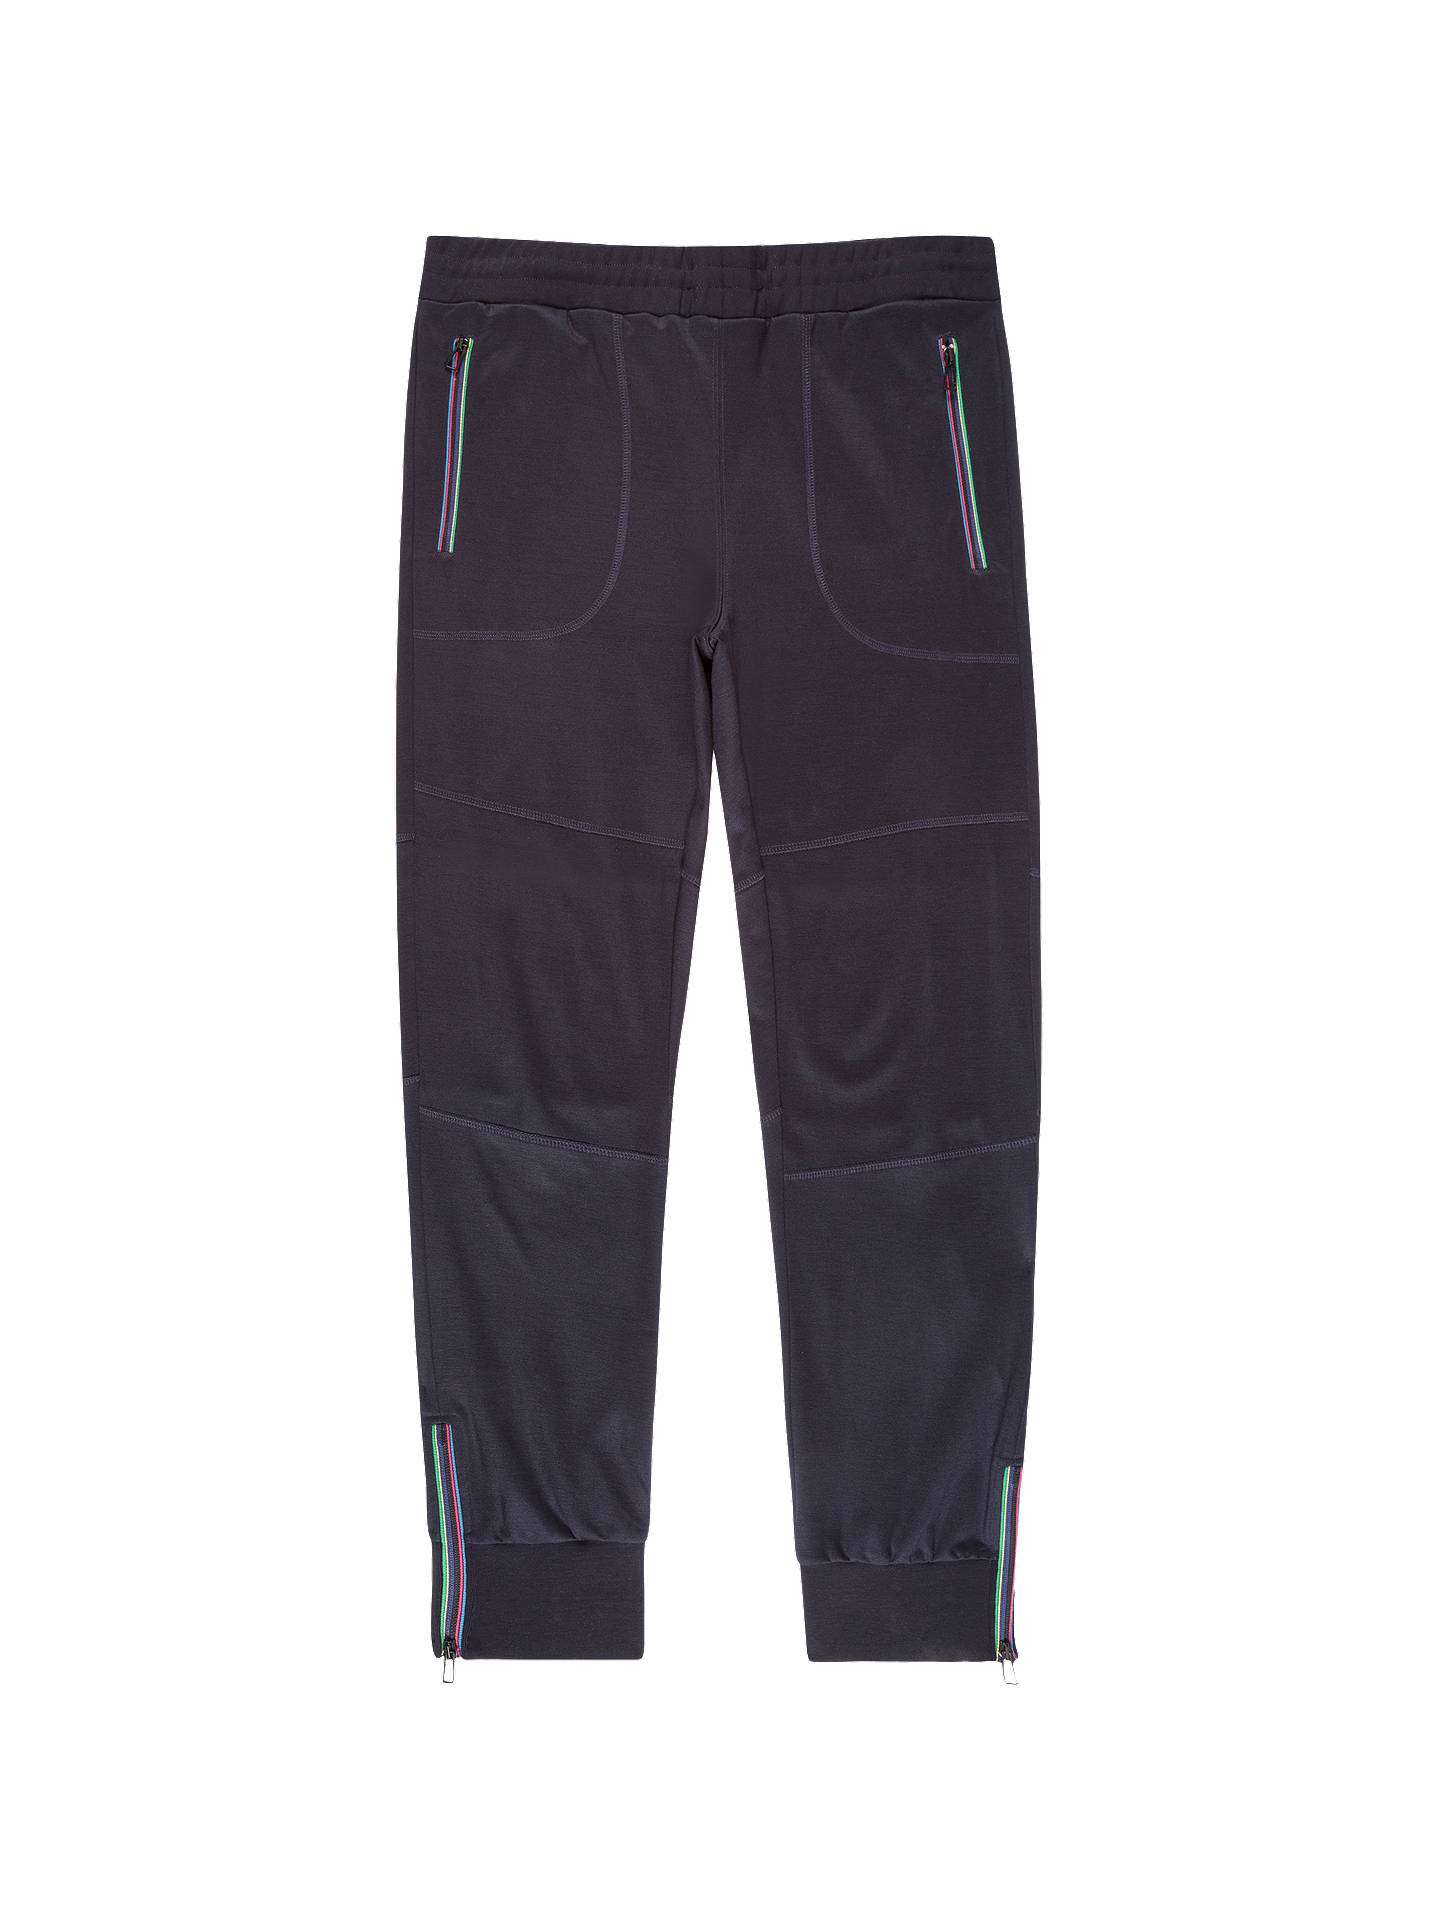 BuyPS Paul Smith Track Pant Trousers, Blue, XXL Online at johnlewis.com